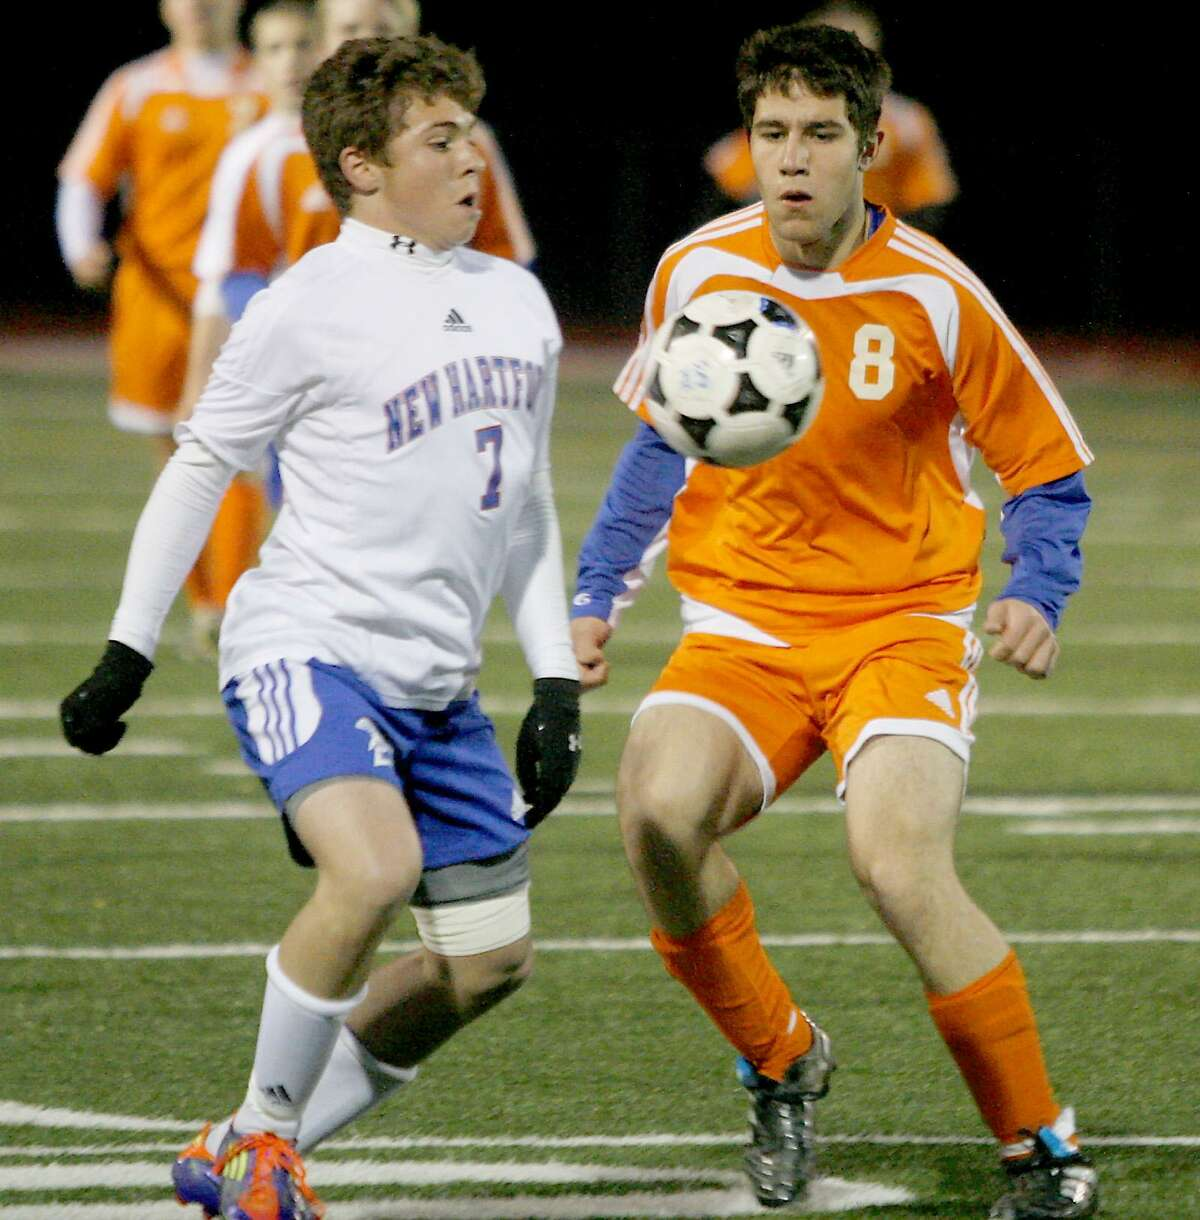 Dispatch Staff Photo by JOHN HAEGER twitter.com/oneidaphoto New Hartford's Josh Pearlman (7) and oneida's Botros Toro (8) work for the ball in the first half of the match in New Hartford on Thursday, Oct. 20, 2011.